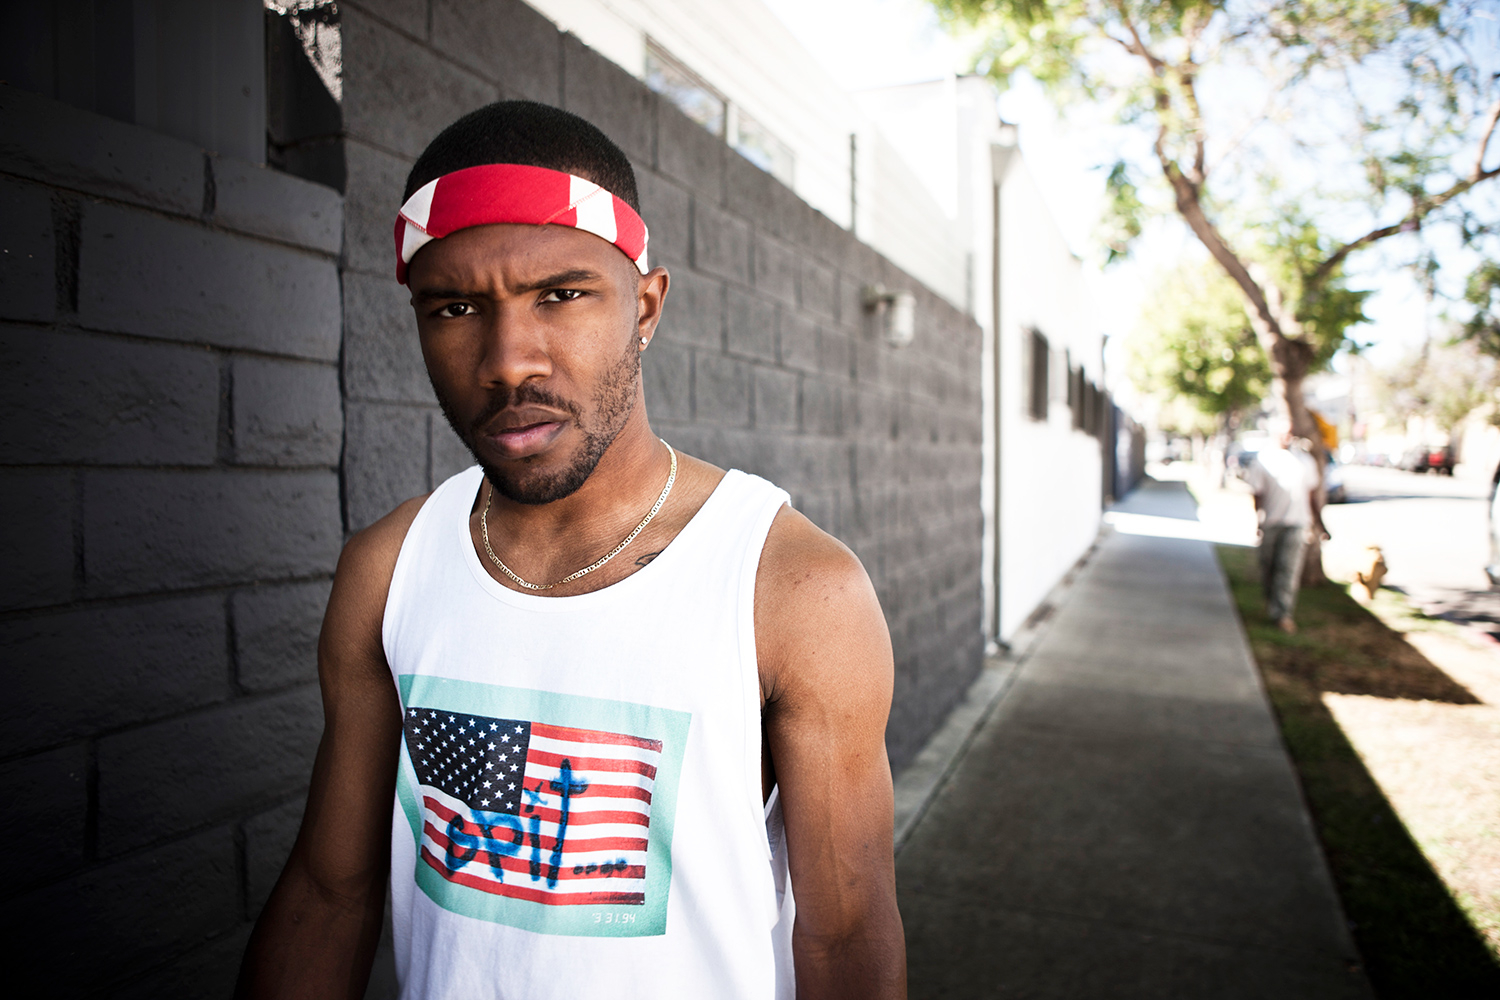 Frank Ocean to Release New Album 'Boys Don't Cry' This Week